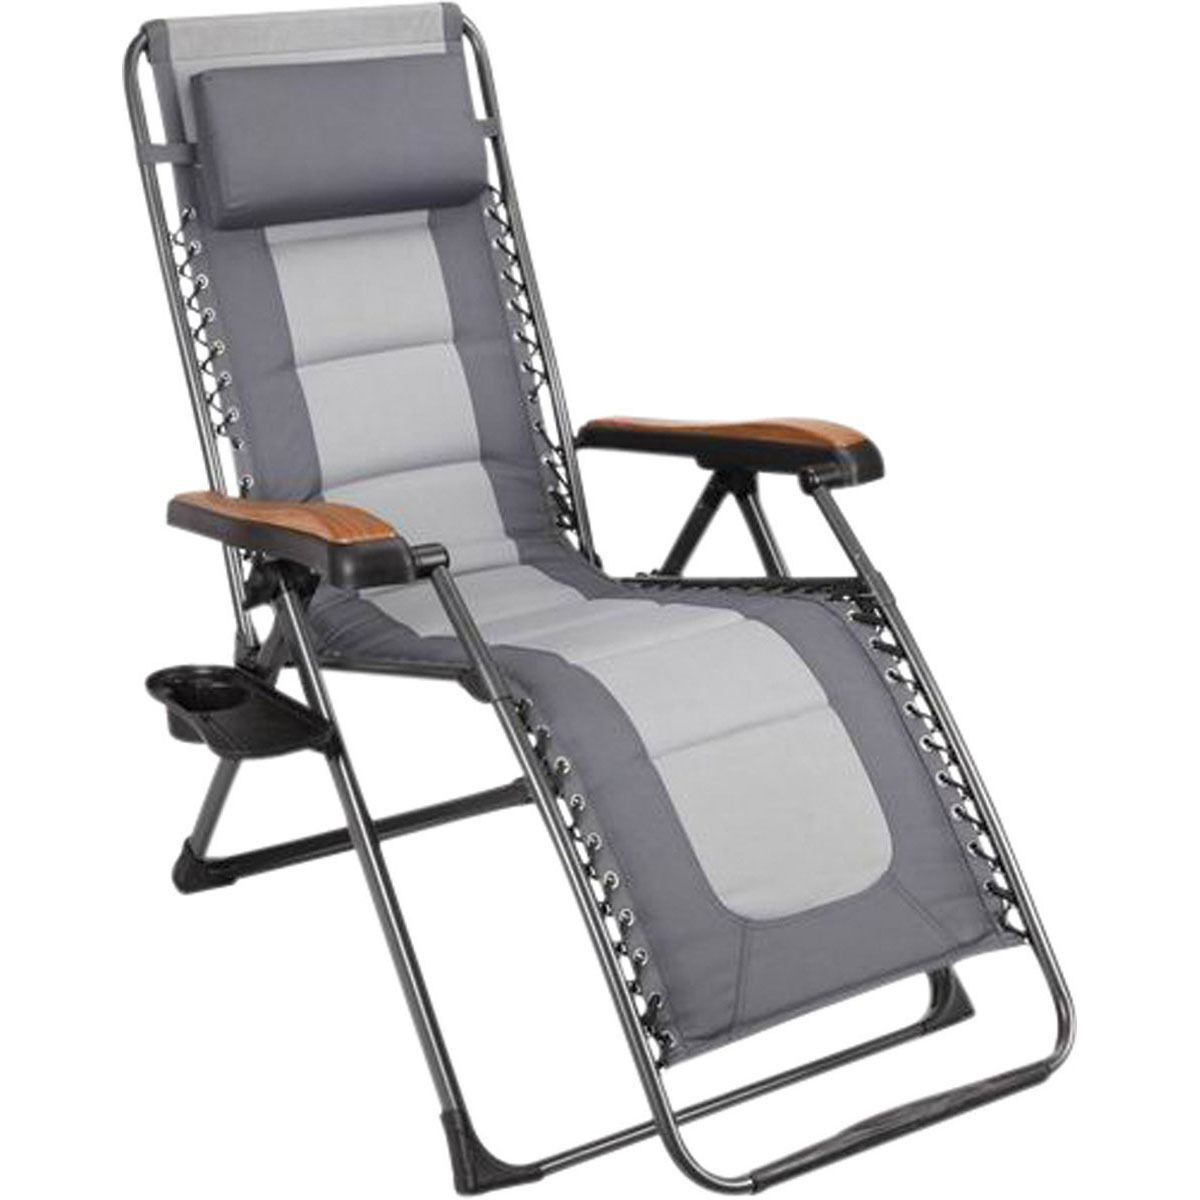 Excellent Reclining C& Chair Oztrail Sun Lounge Hayman Arm Pool Available At  sc 1 st  Pinterest & outdoor single folding camping chair?cheap outdoor camping chair ... islam-shia.org